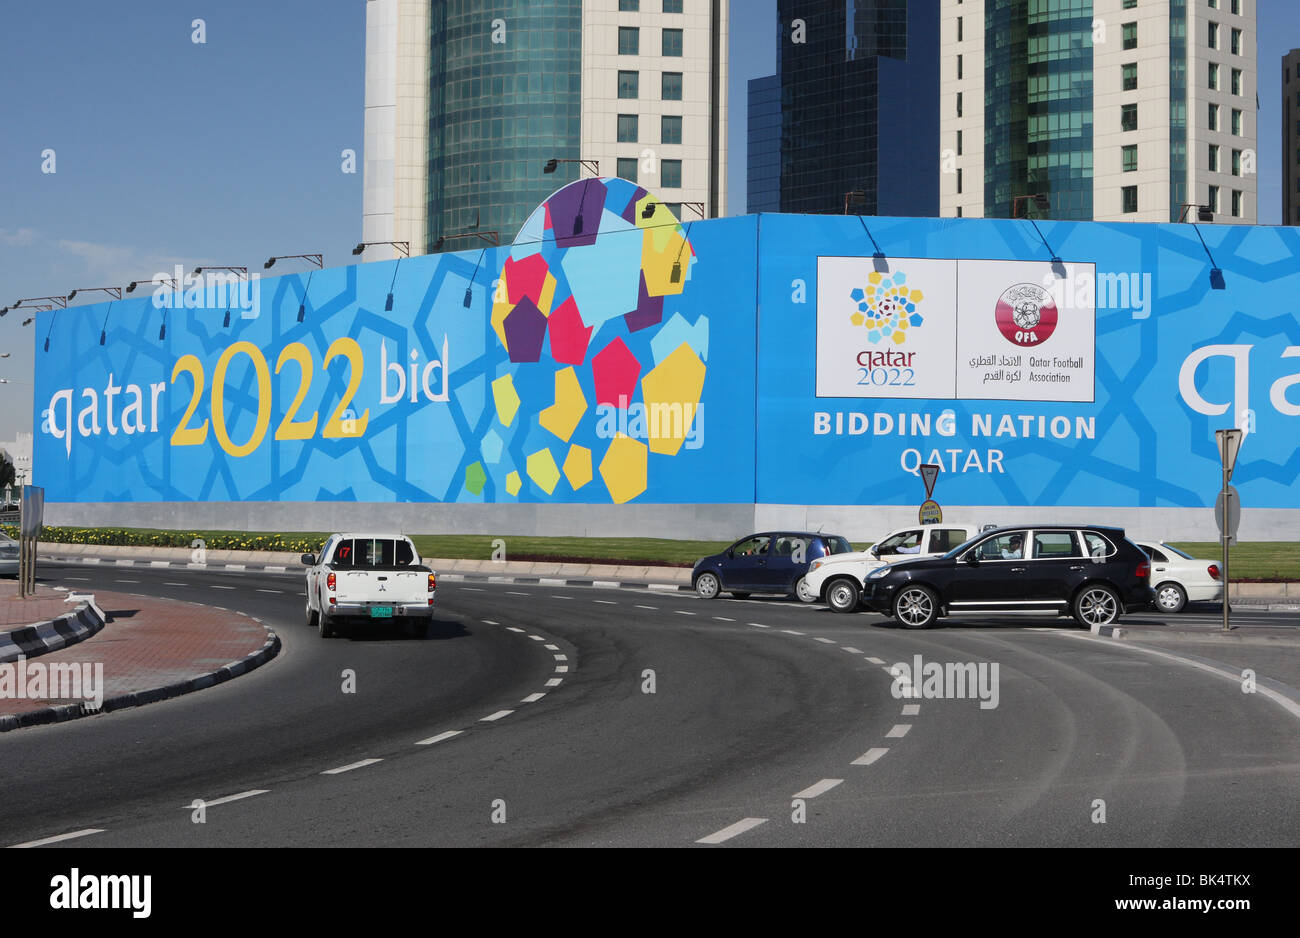 Advertisement showing that Qatar is a bidding nation for the 2022 FIFA Word Cup - Stock Image